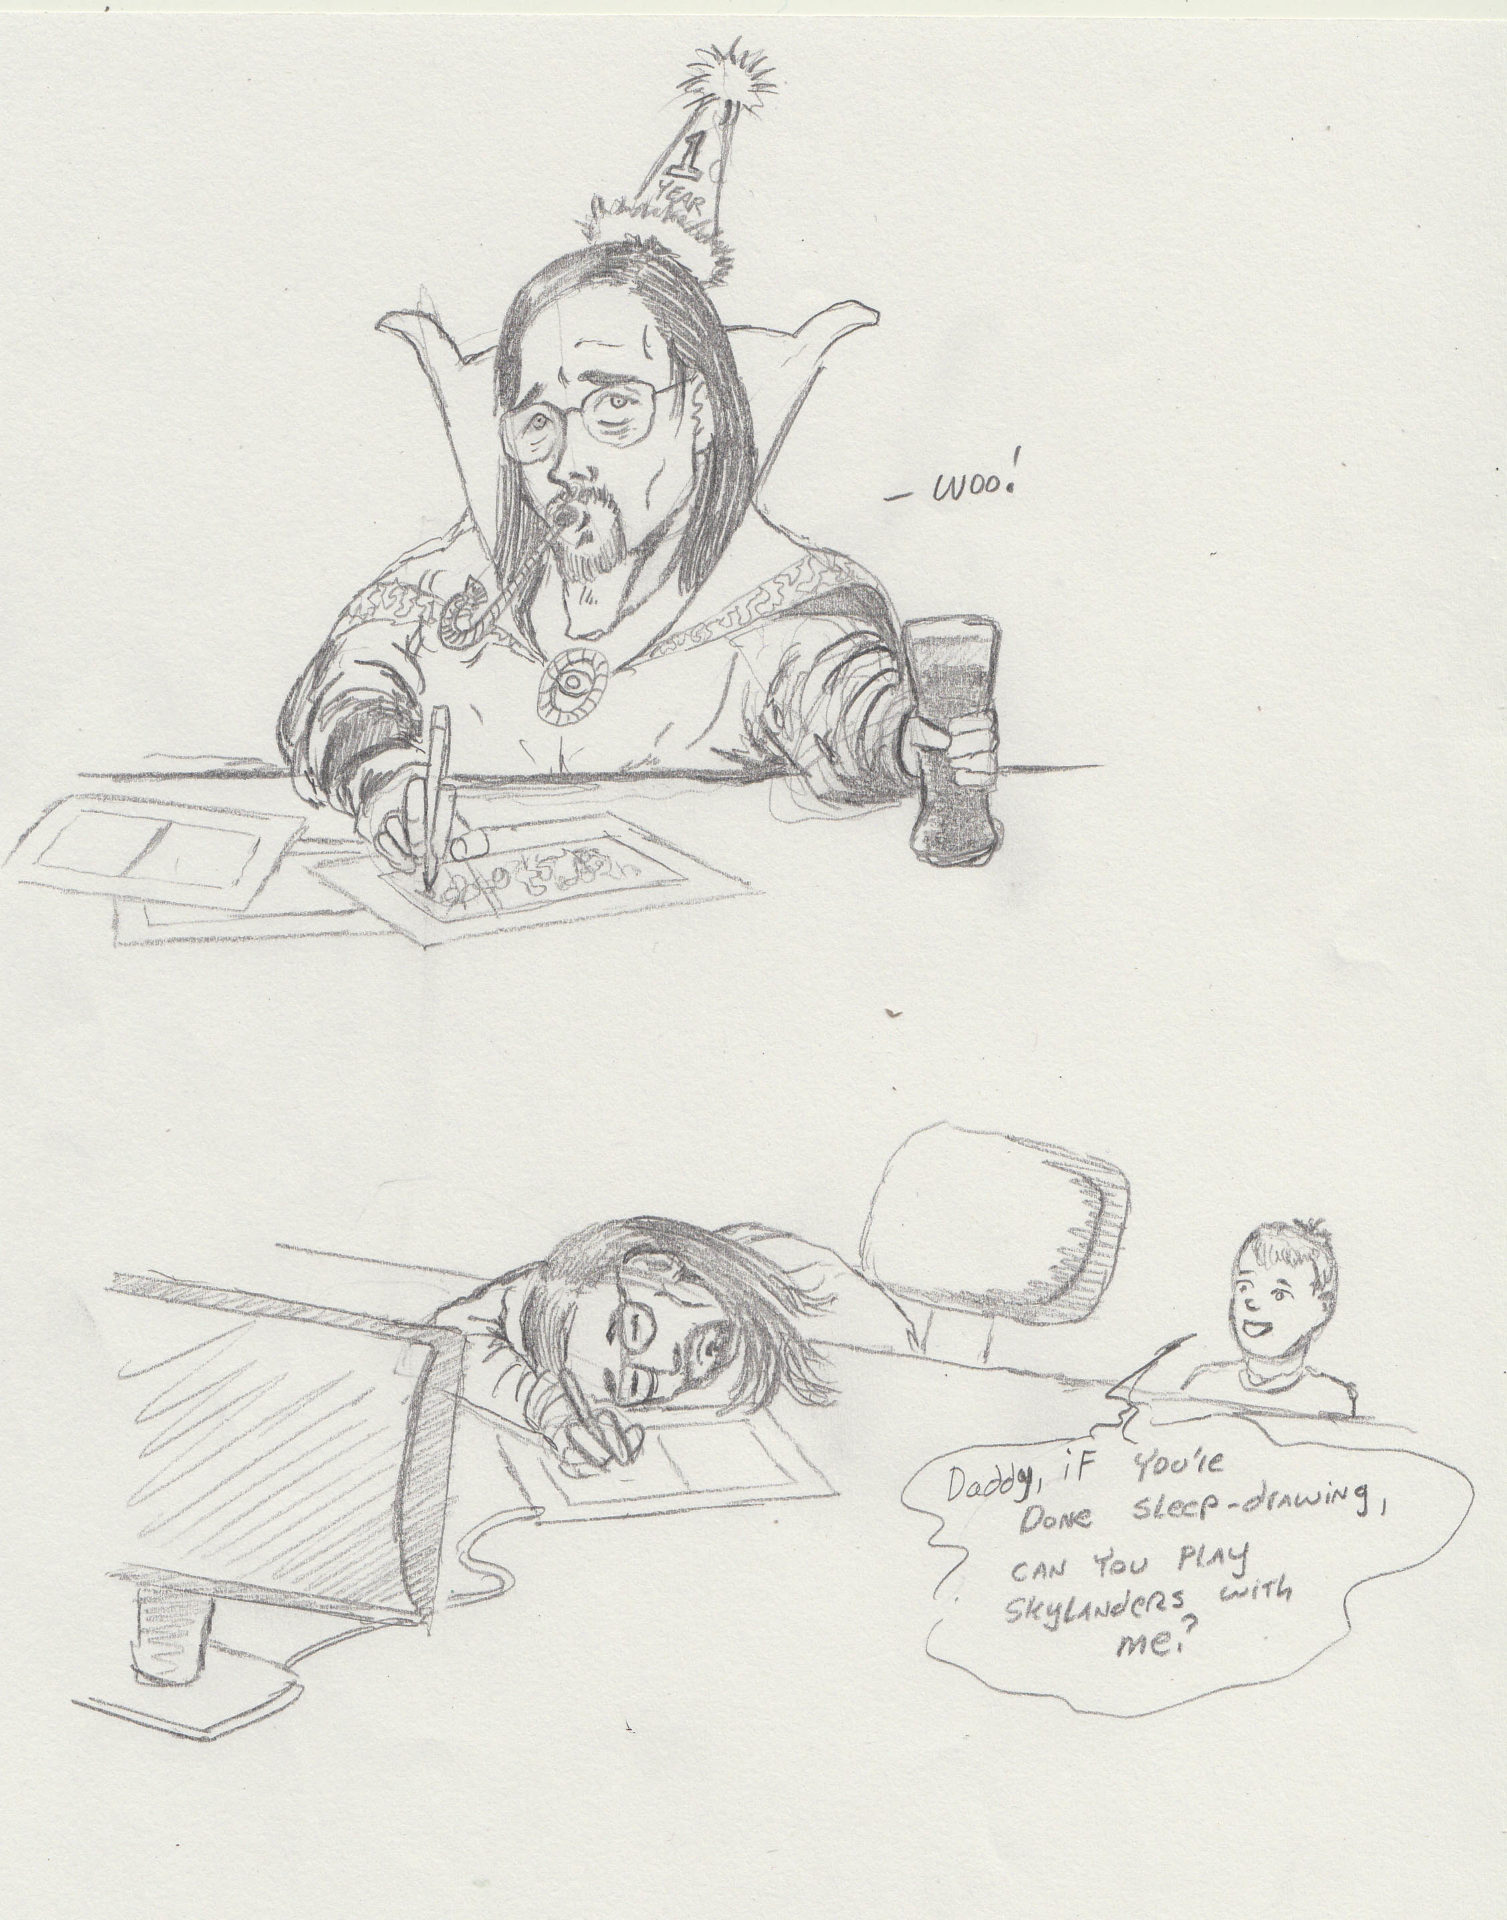 Yes. I usually wear a Dr. Strange cloak when I draw. Doesn't everyone?